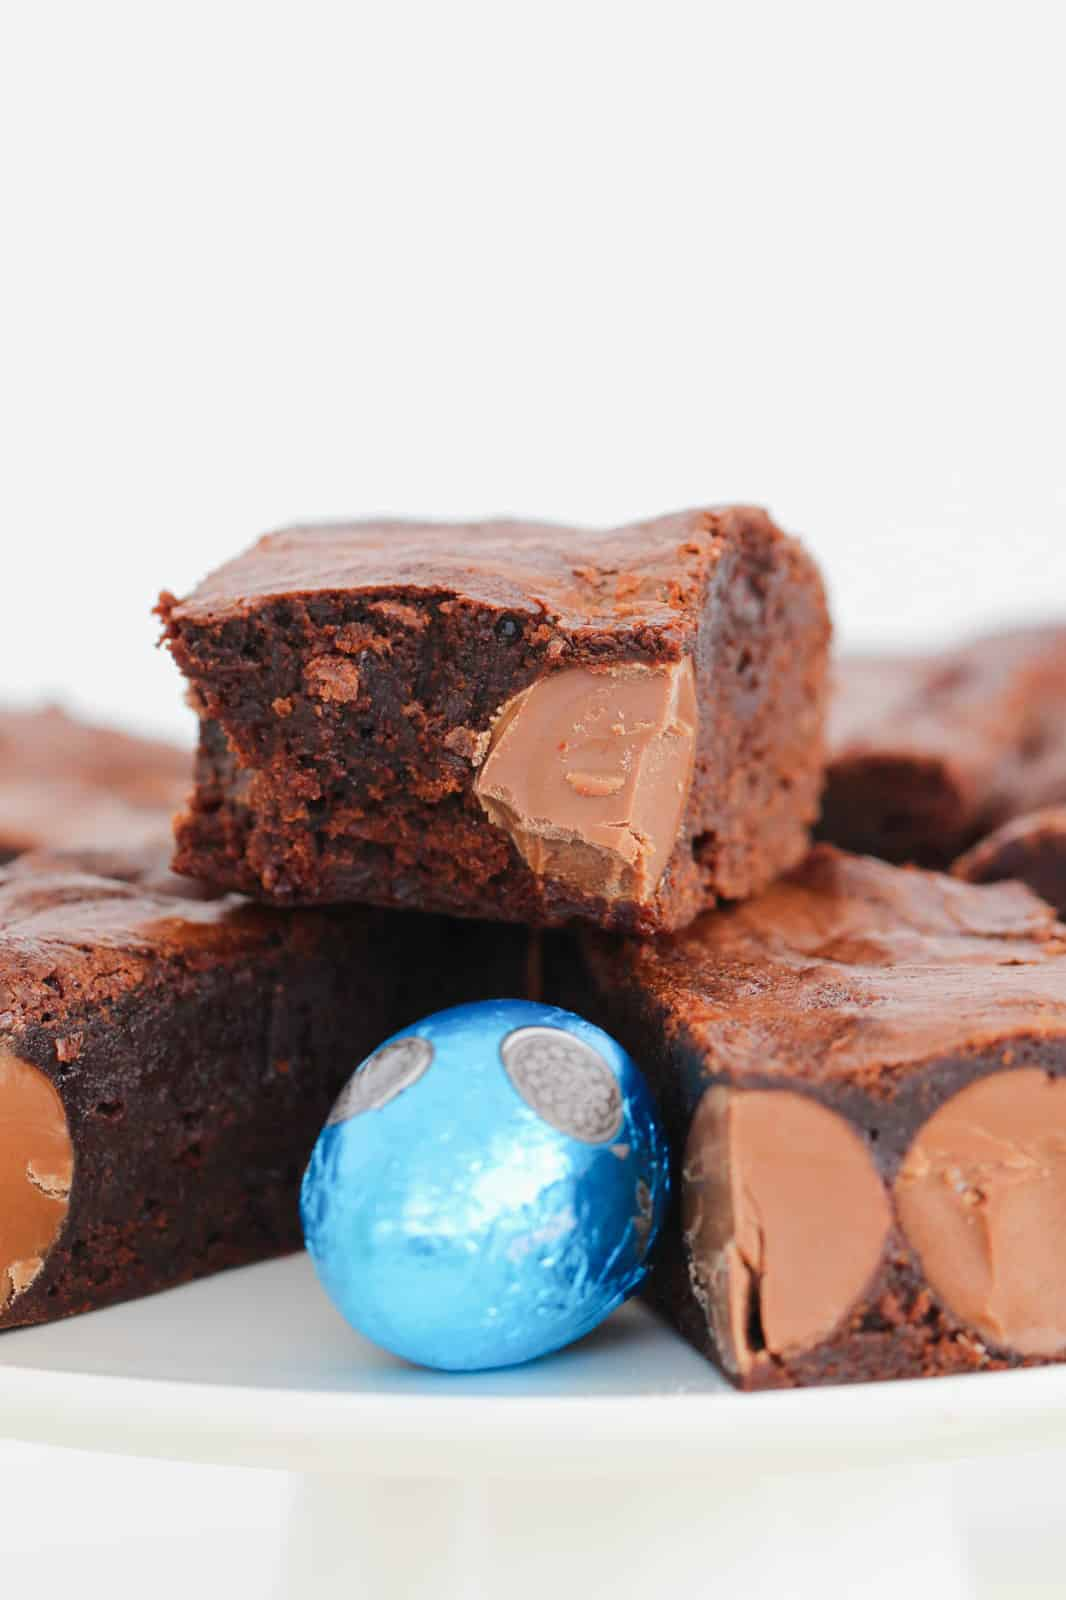 A half eaten square of Easter Brownie slice made with solid mini Easter eggs.